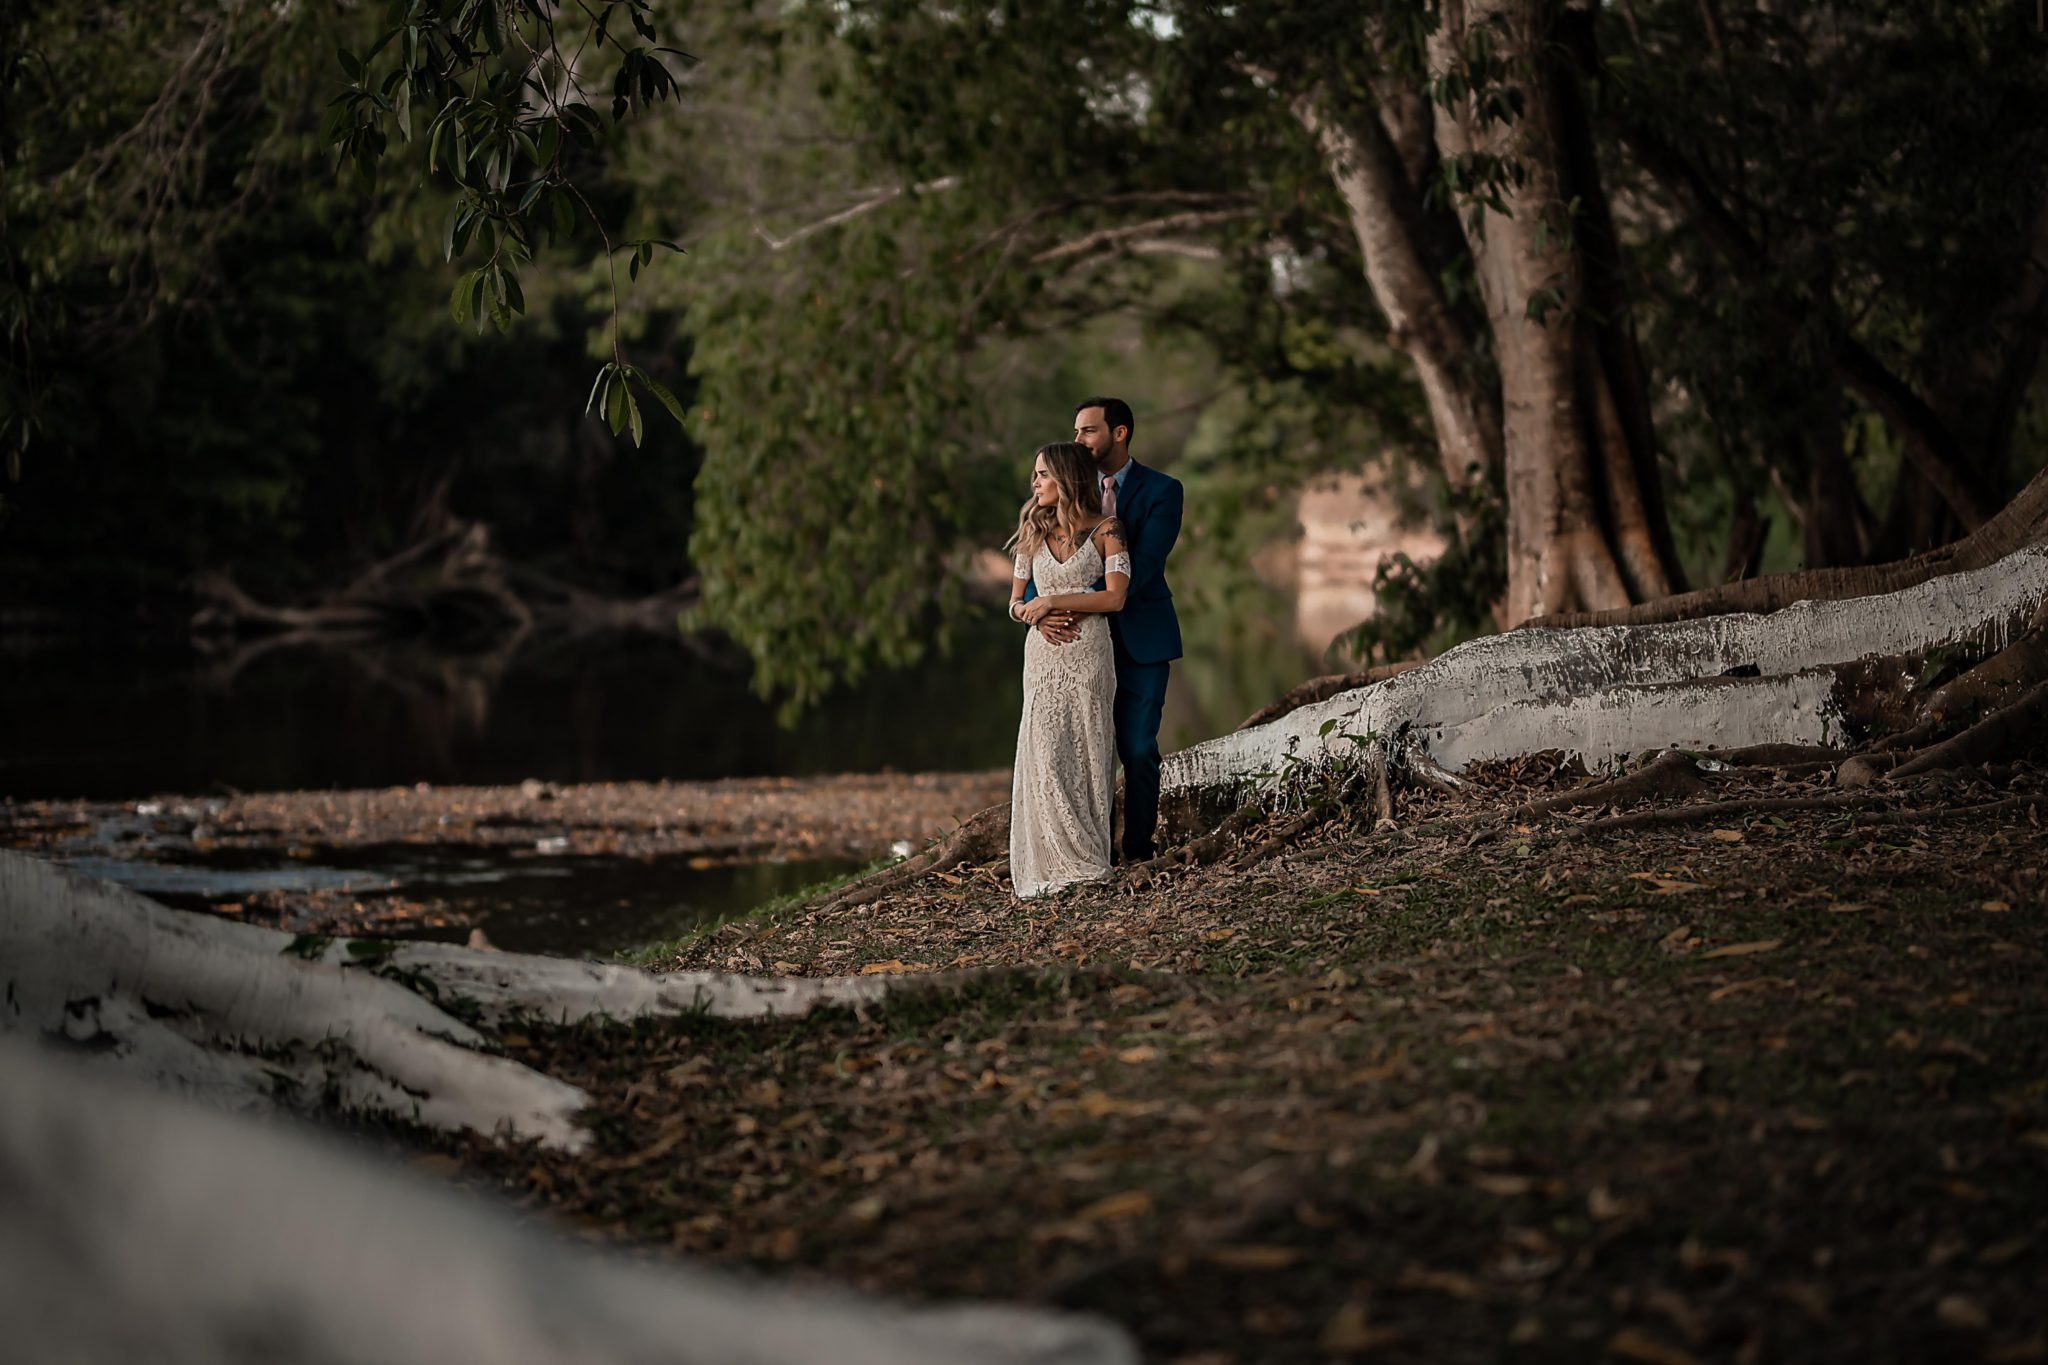 JOEY+MADDY-Intimate elopement in San Ignacio Belize